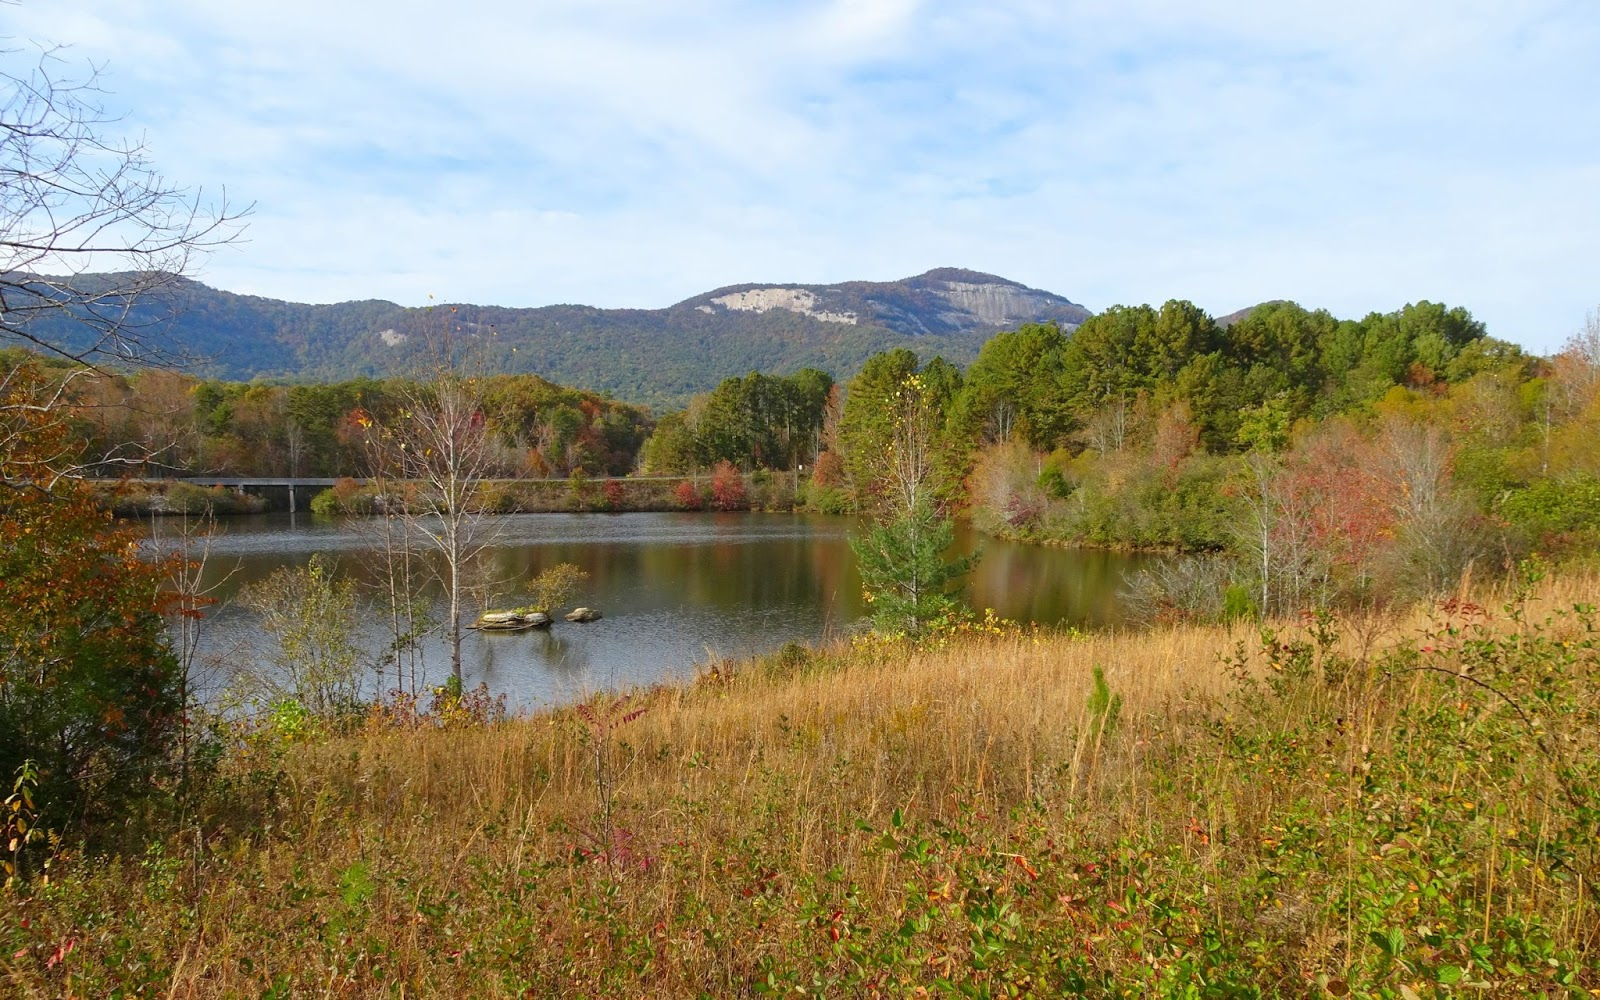 Femme au foyer: Your guide to Cherokee Foothills Scenic Highway 11